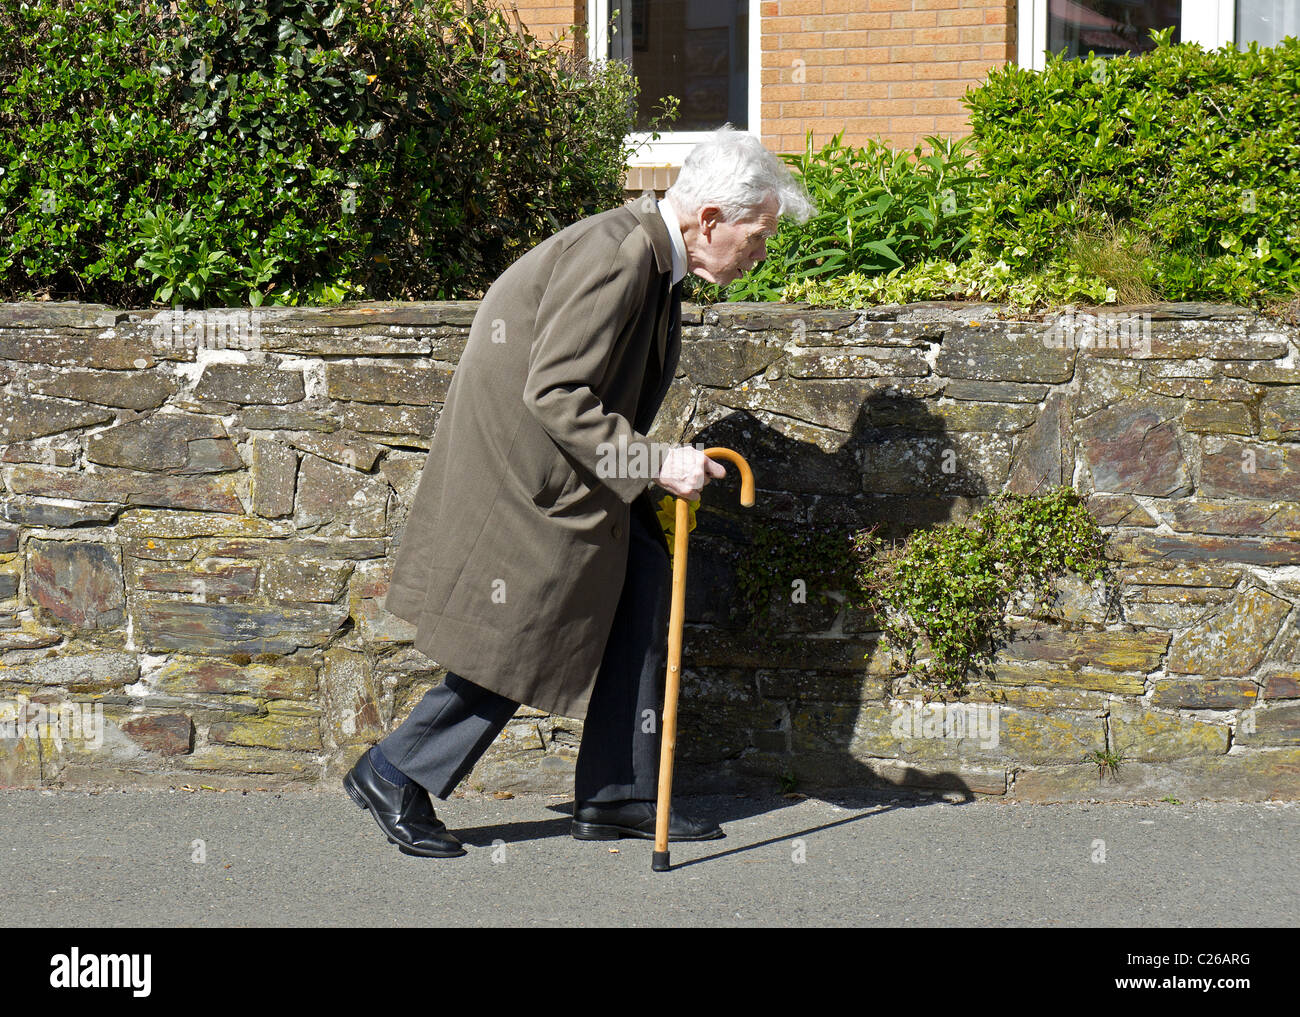 Old Man Walking Bent High Resolution Stock Photography and Images - Alamy